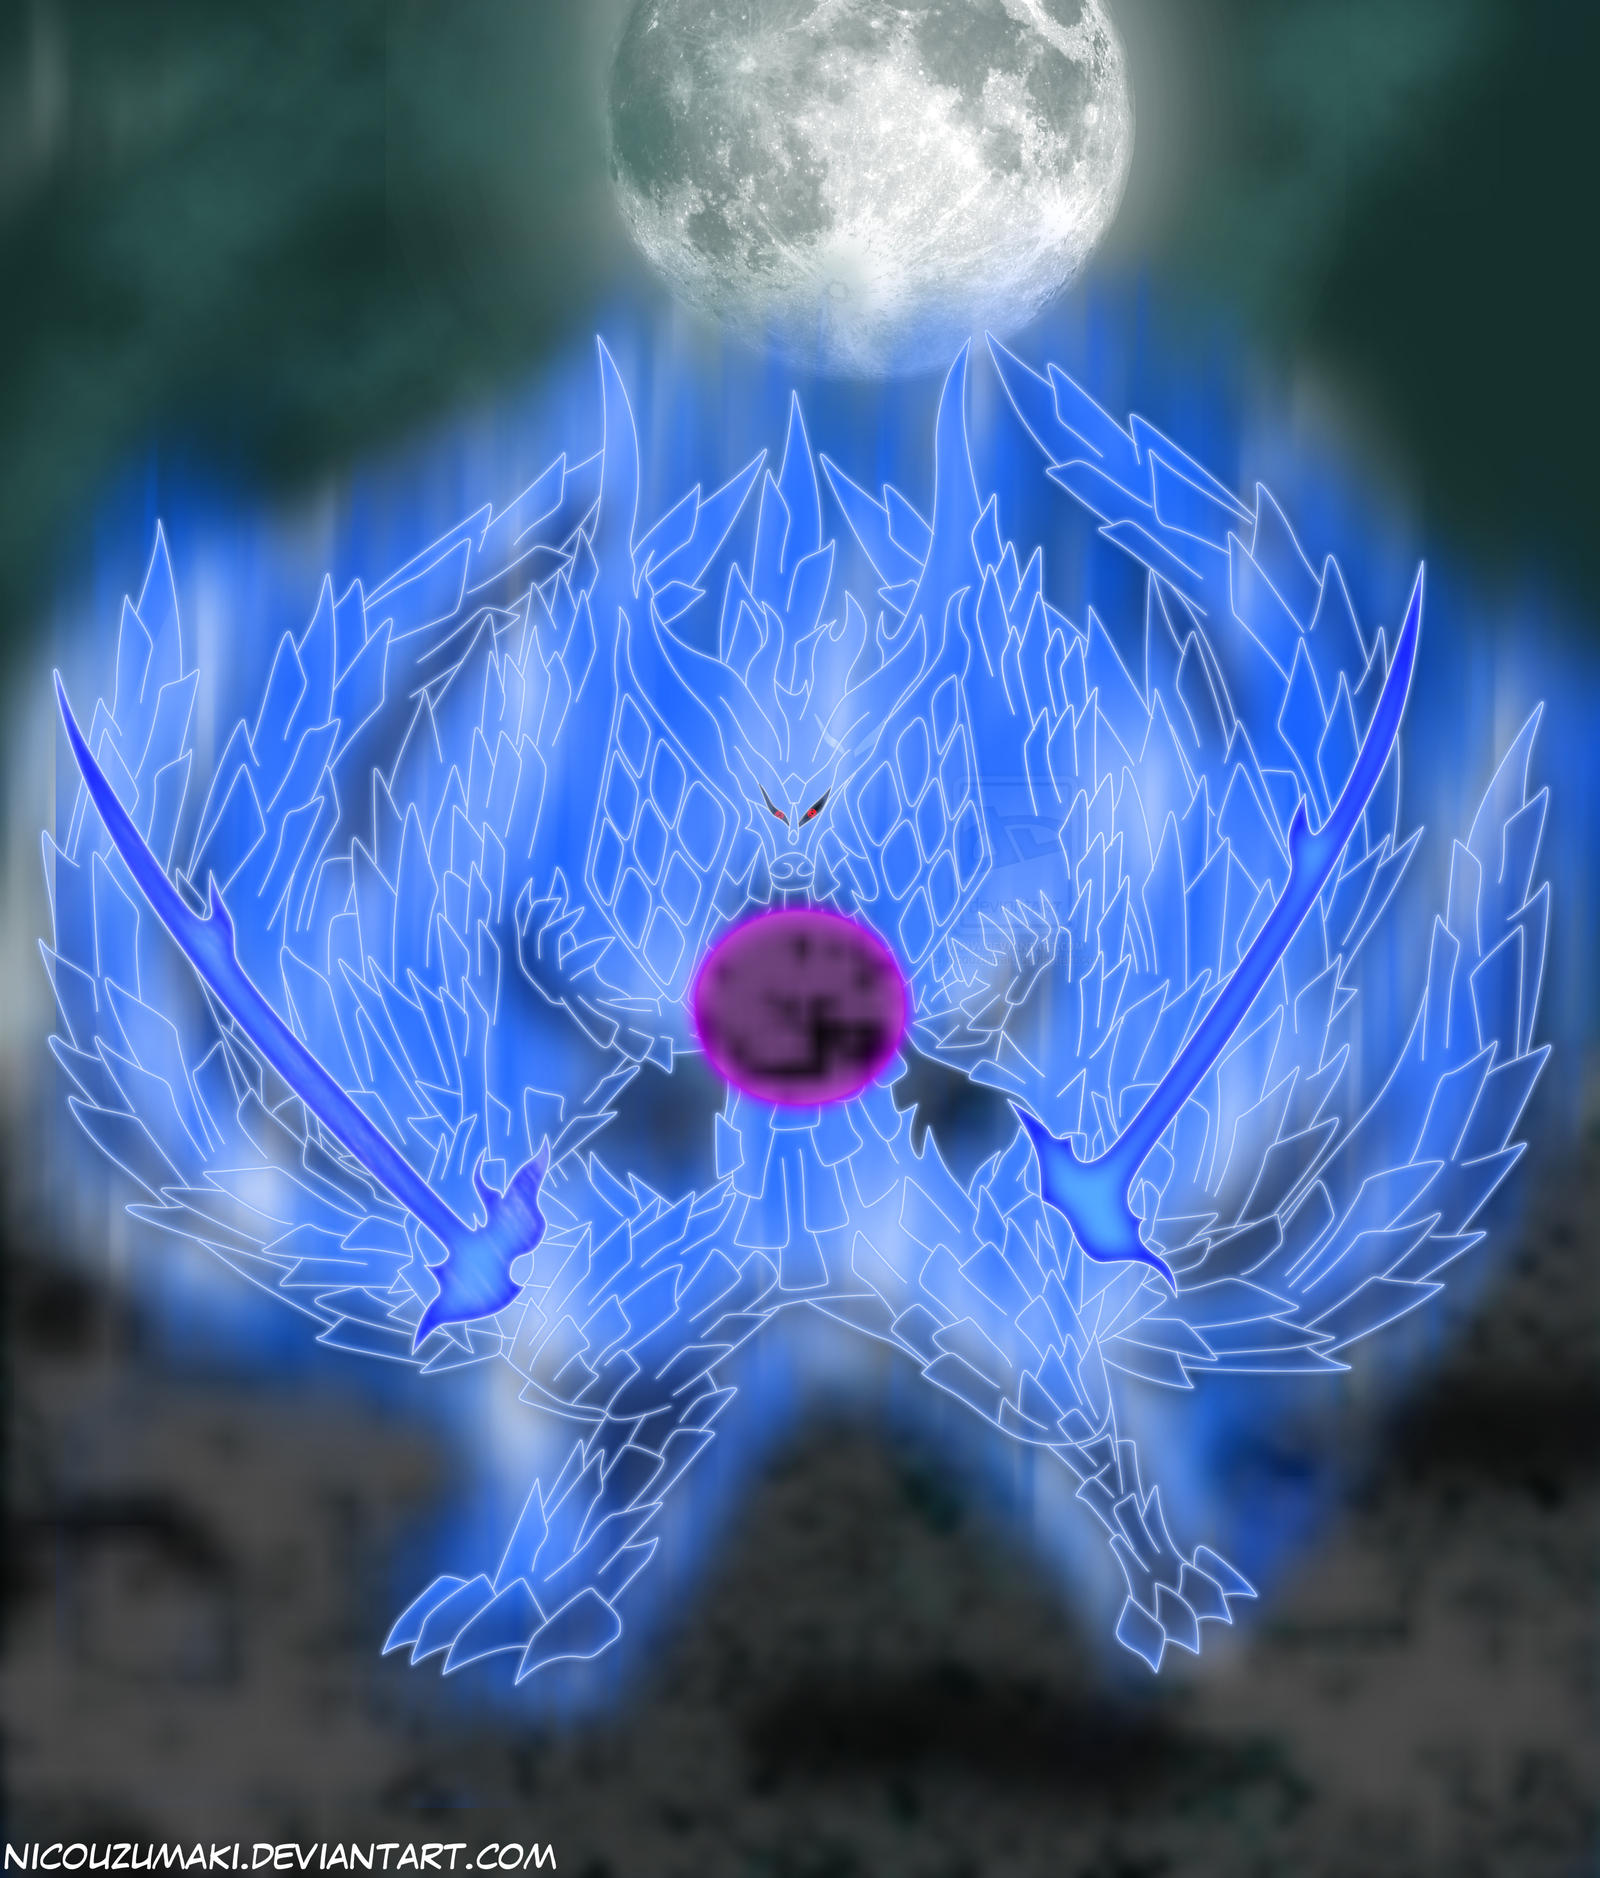 Madara kyuubi perfect susanoo looks epic!!!